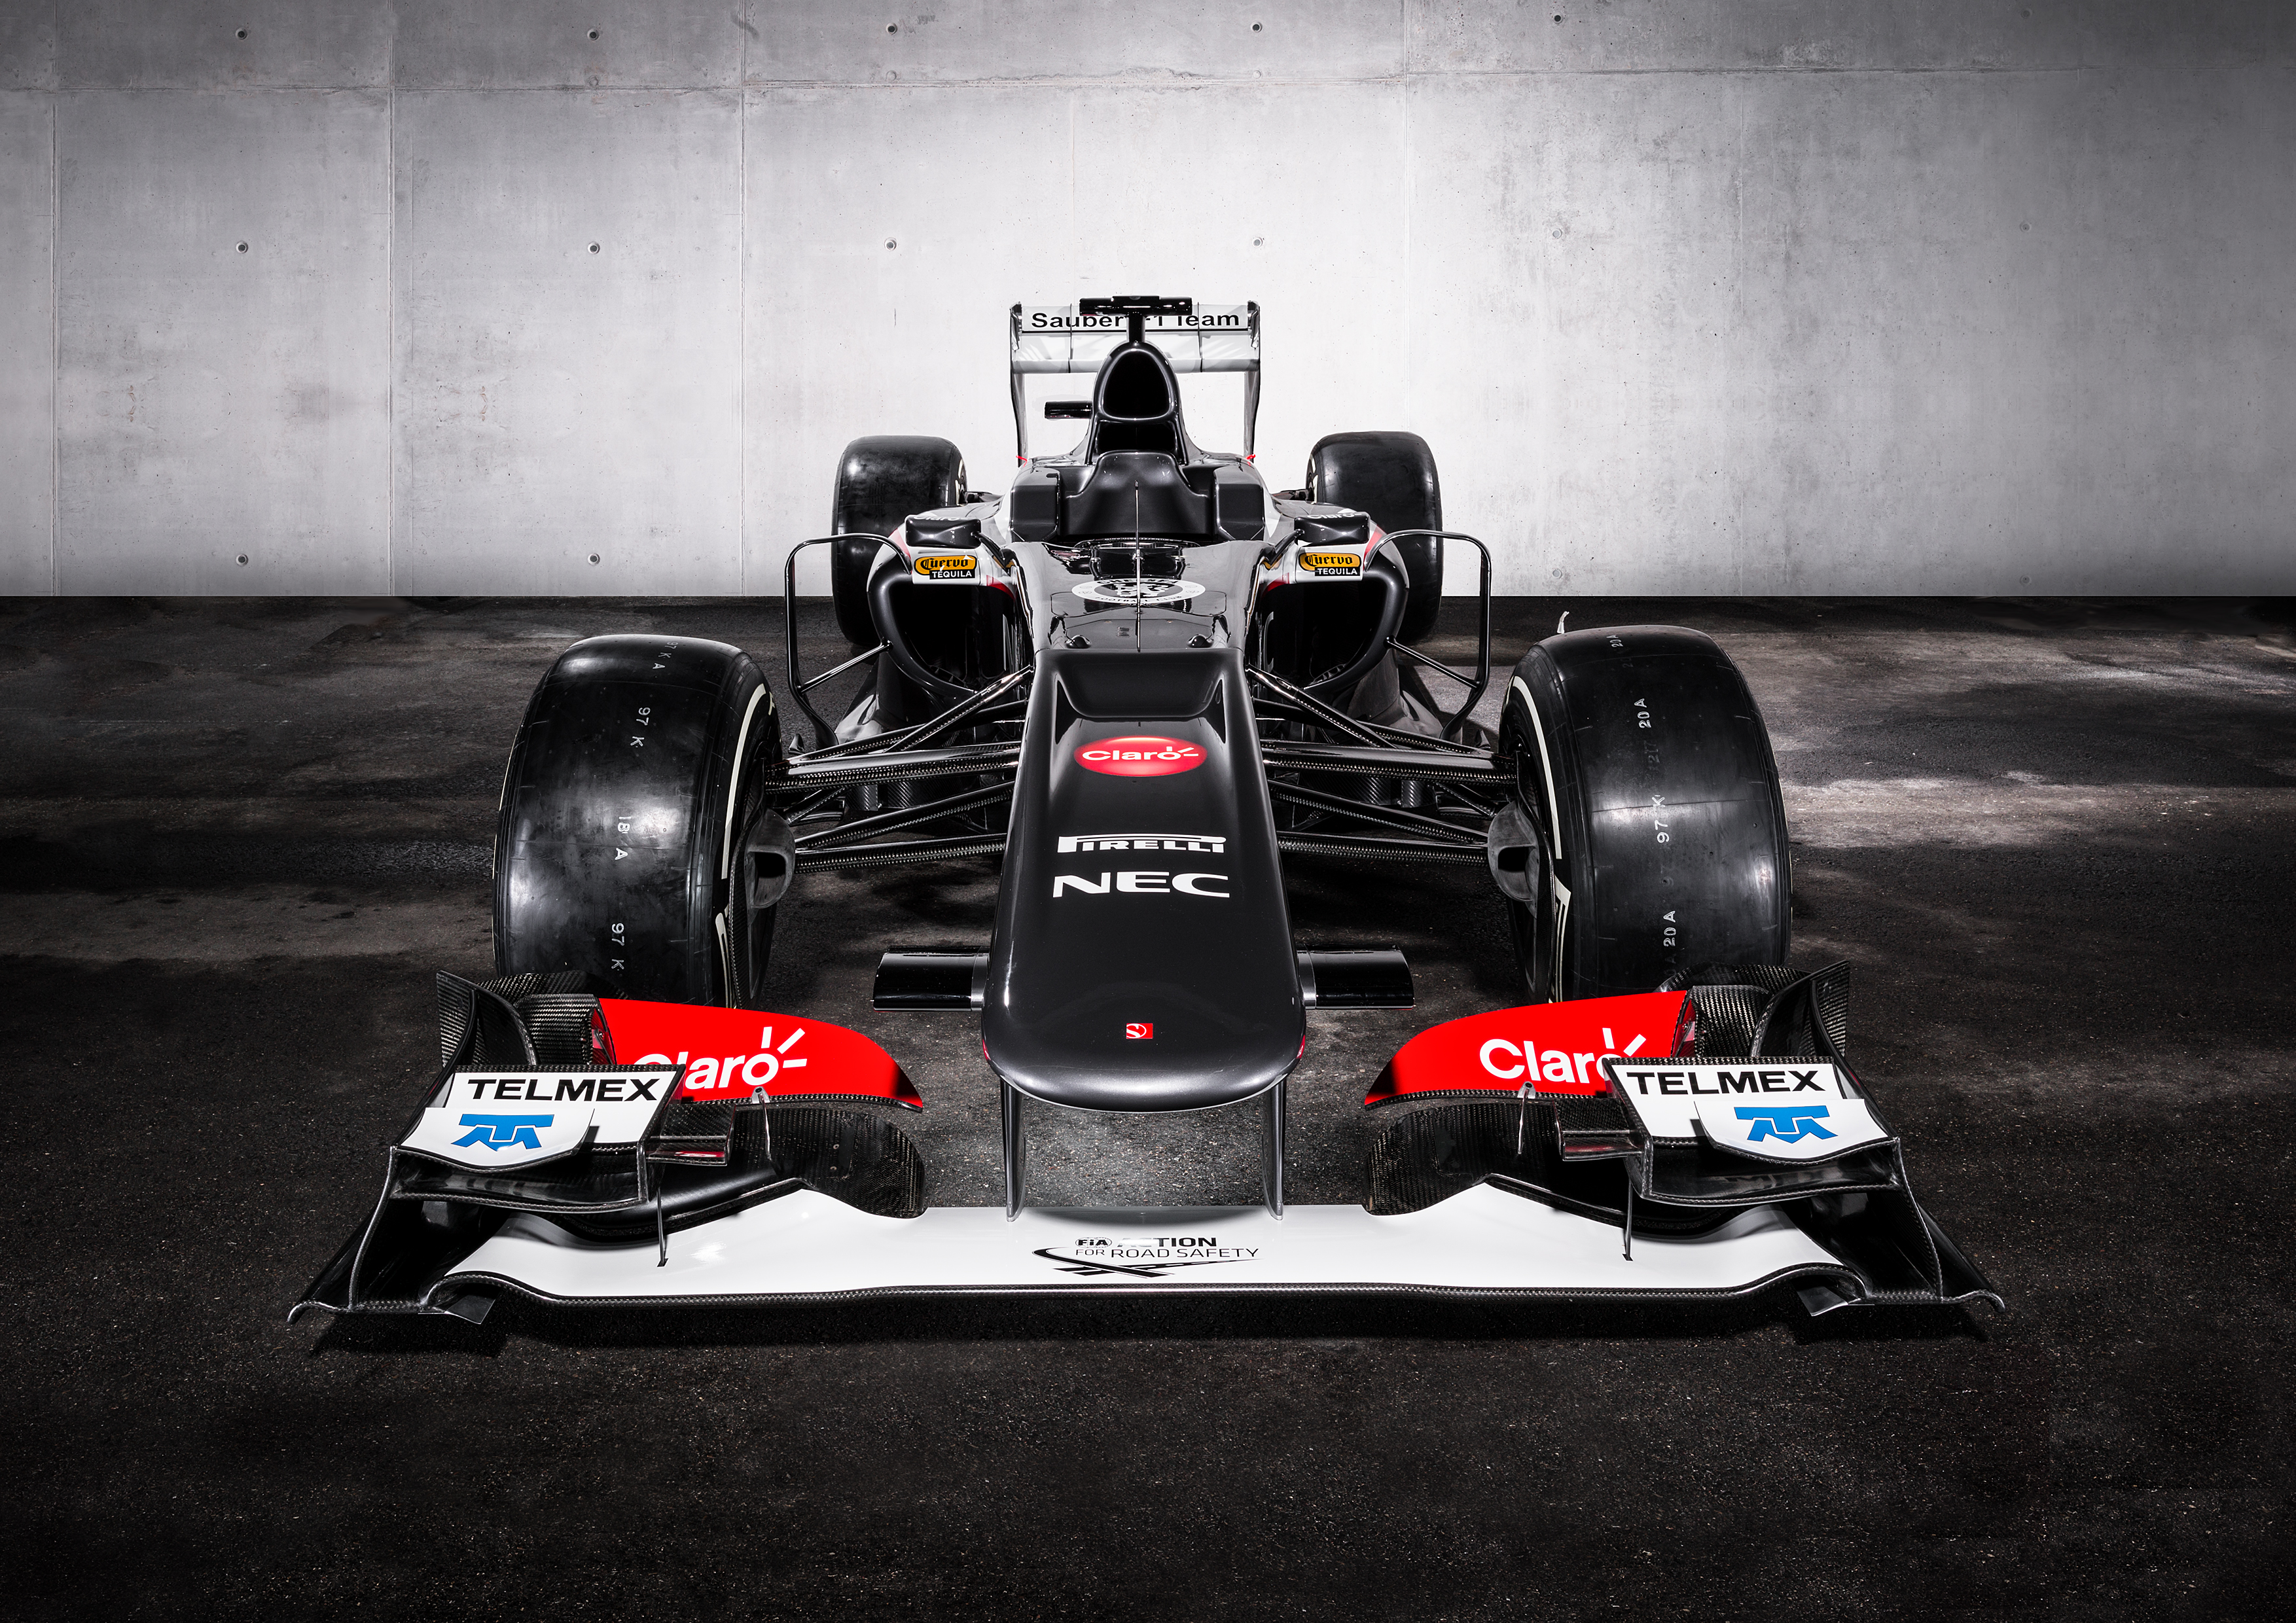 F1: Pictures Of The New Sauber F1 Car